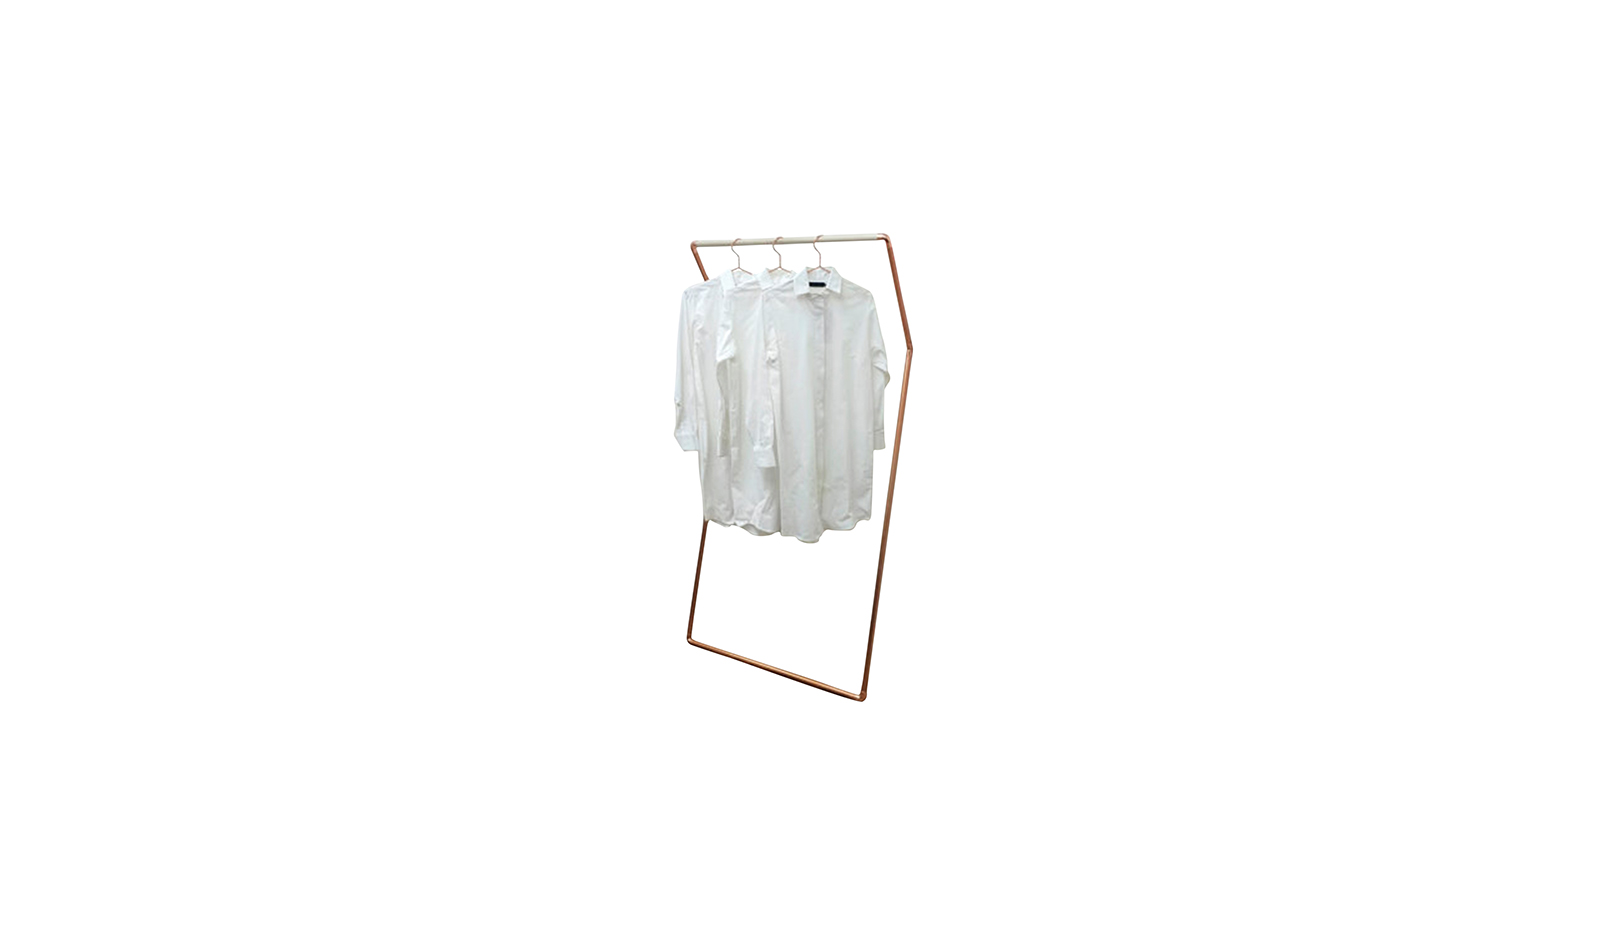 K Rack Leaning Wall Clothing Rack